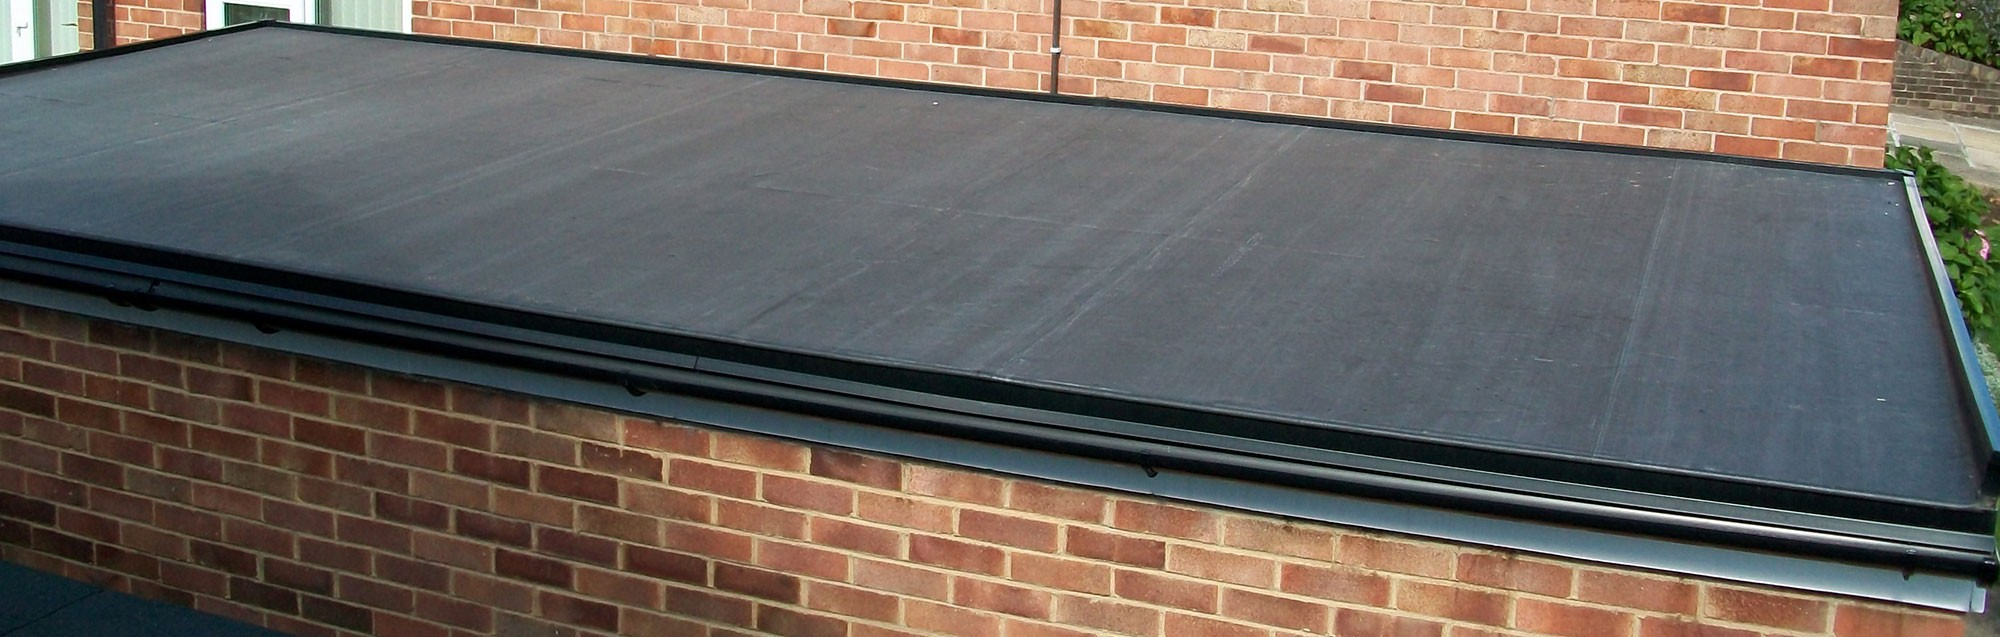 Rubber roof system